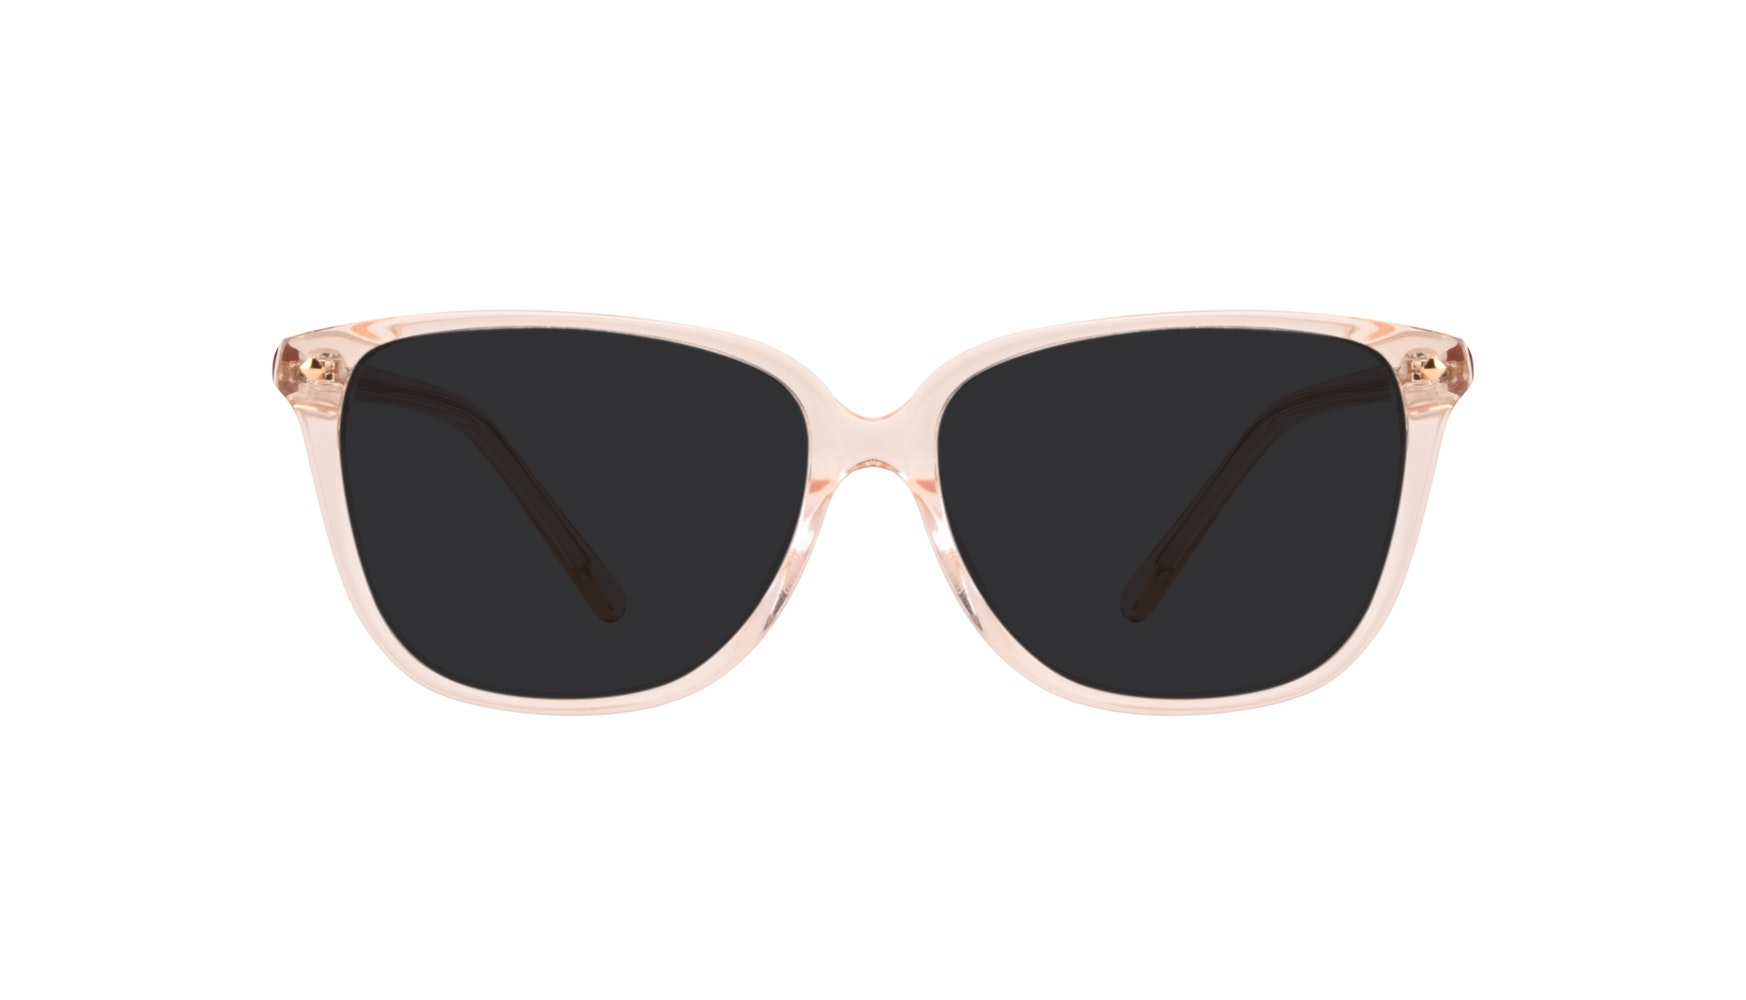 Affordable Fashion Glasses Rectangle Square Sunglasses Women Muse Blond